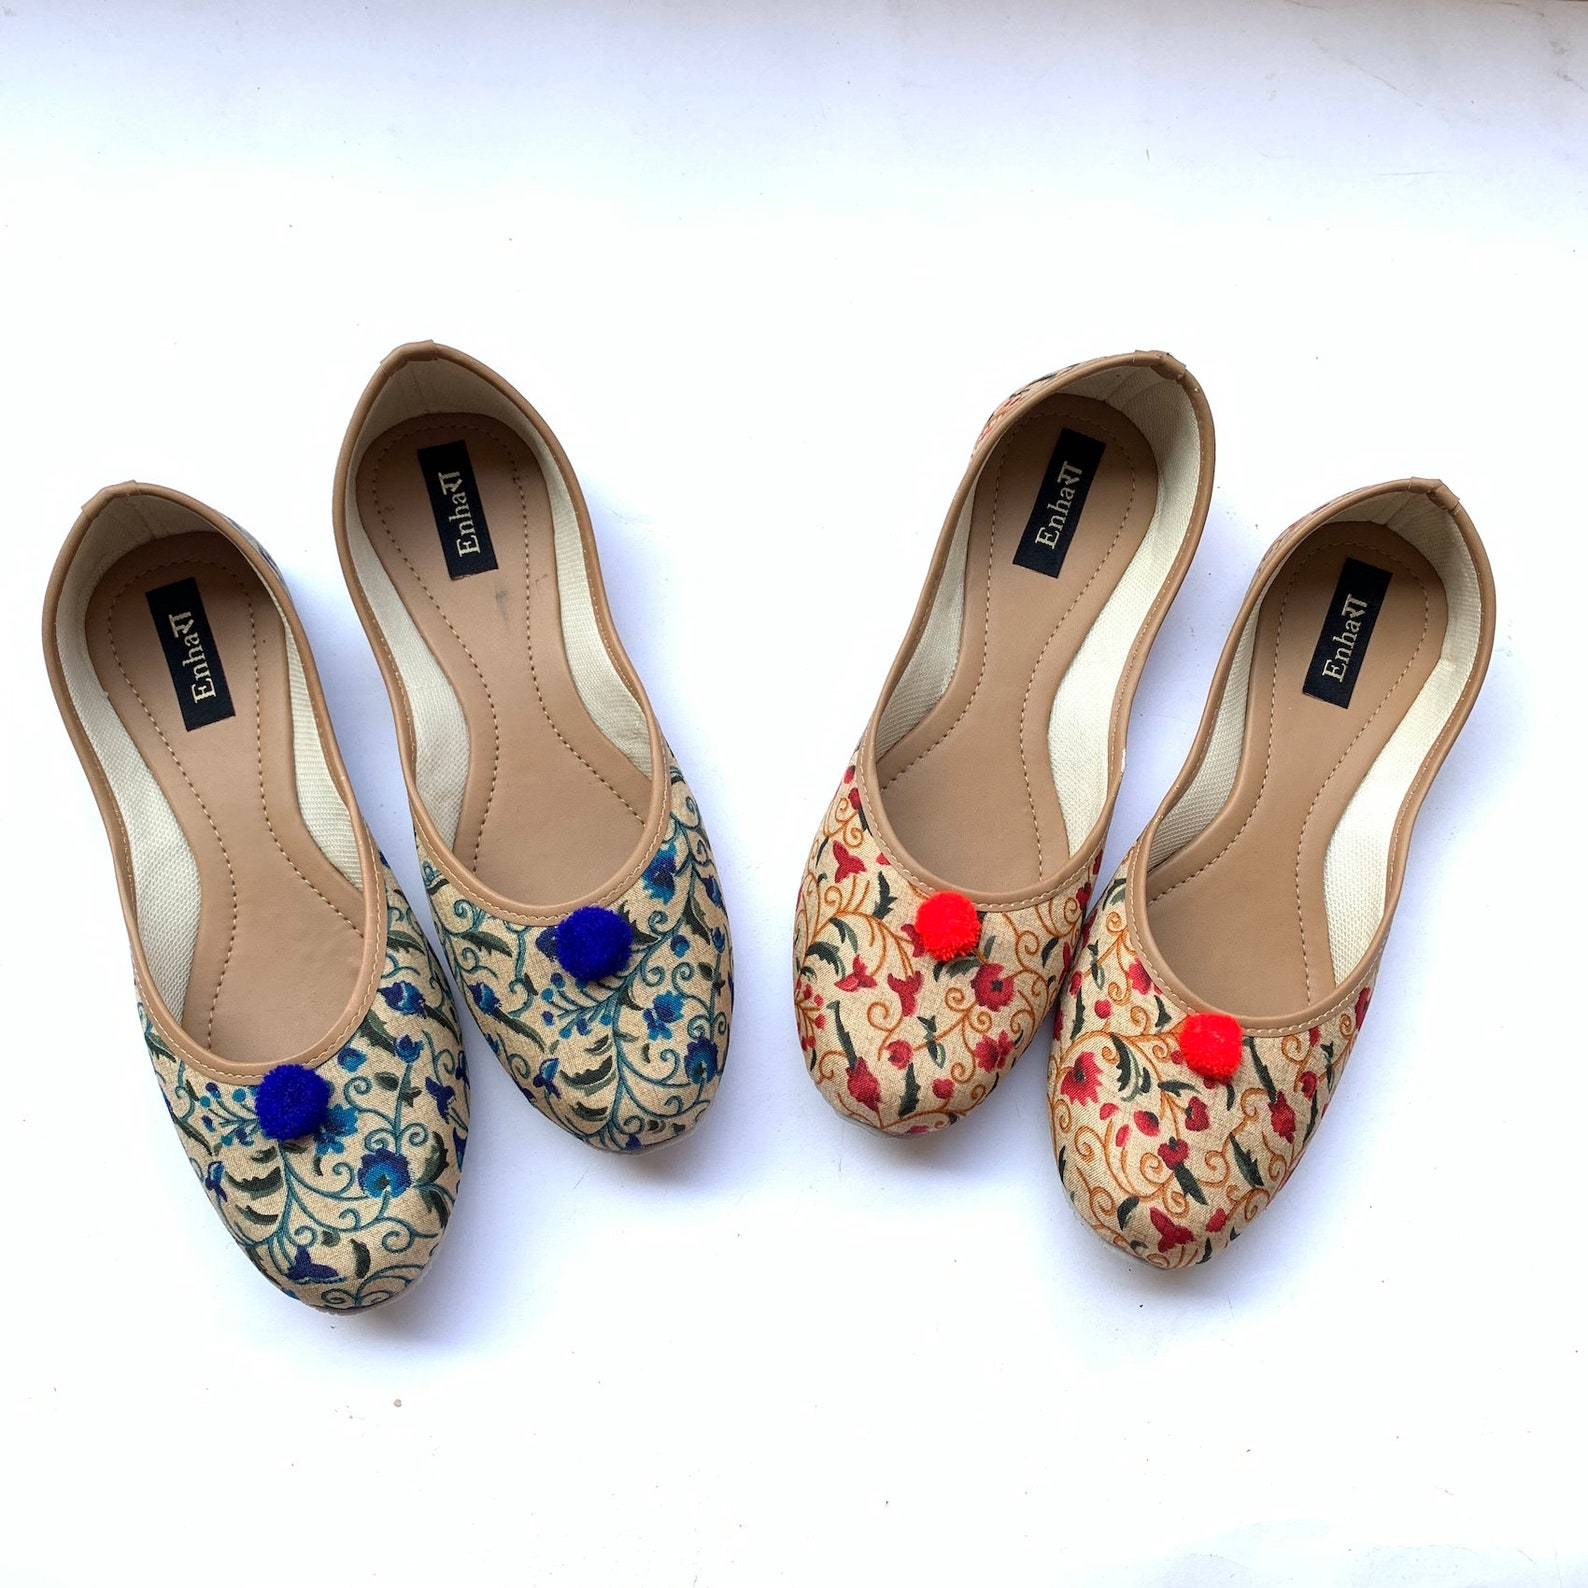 blue floral ballet flat shoes for women, slip on shoes, indian shoes, handmade designer shoes